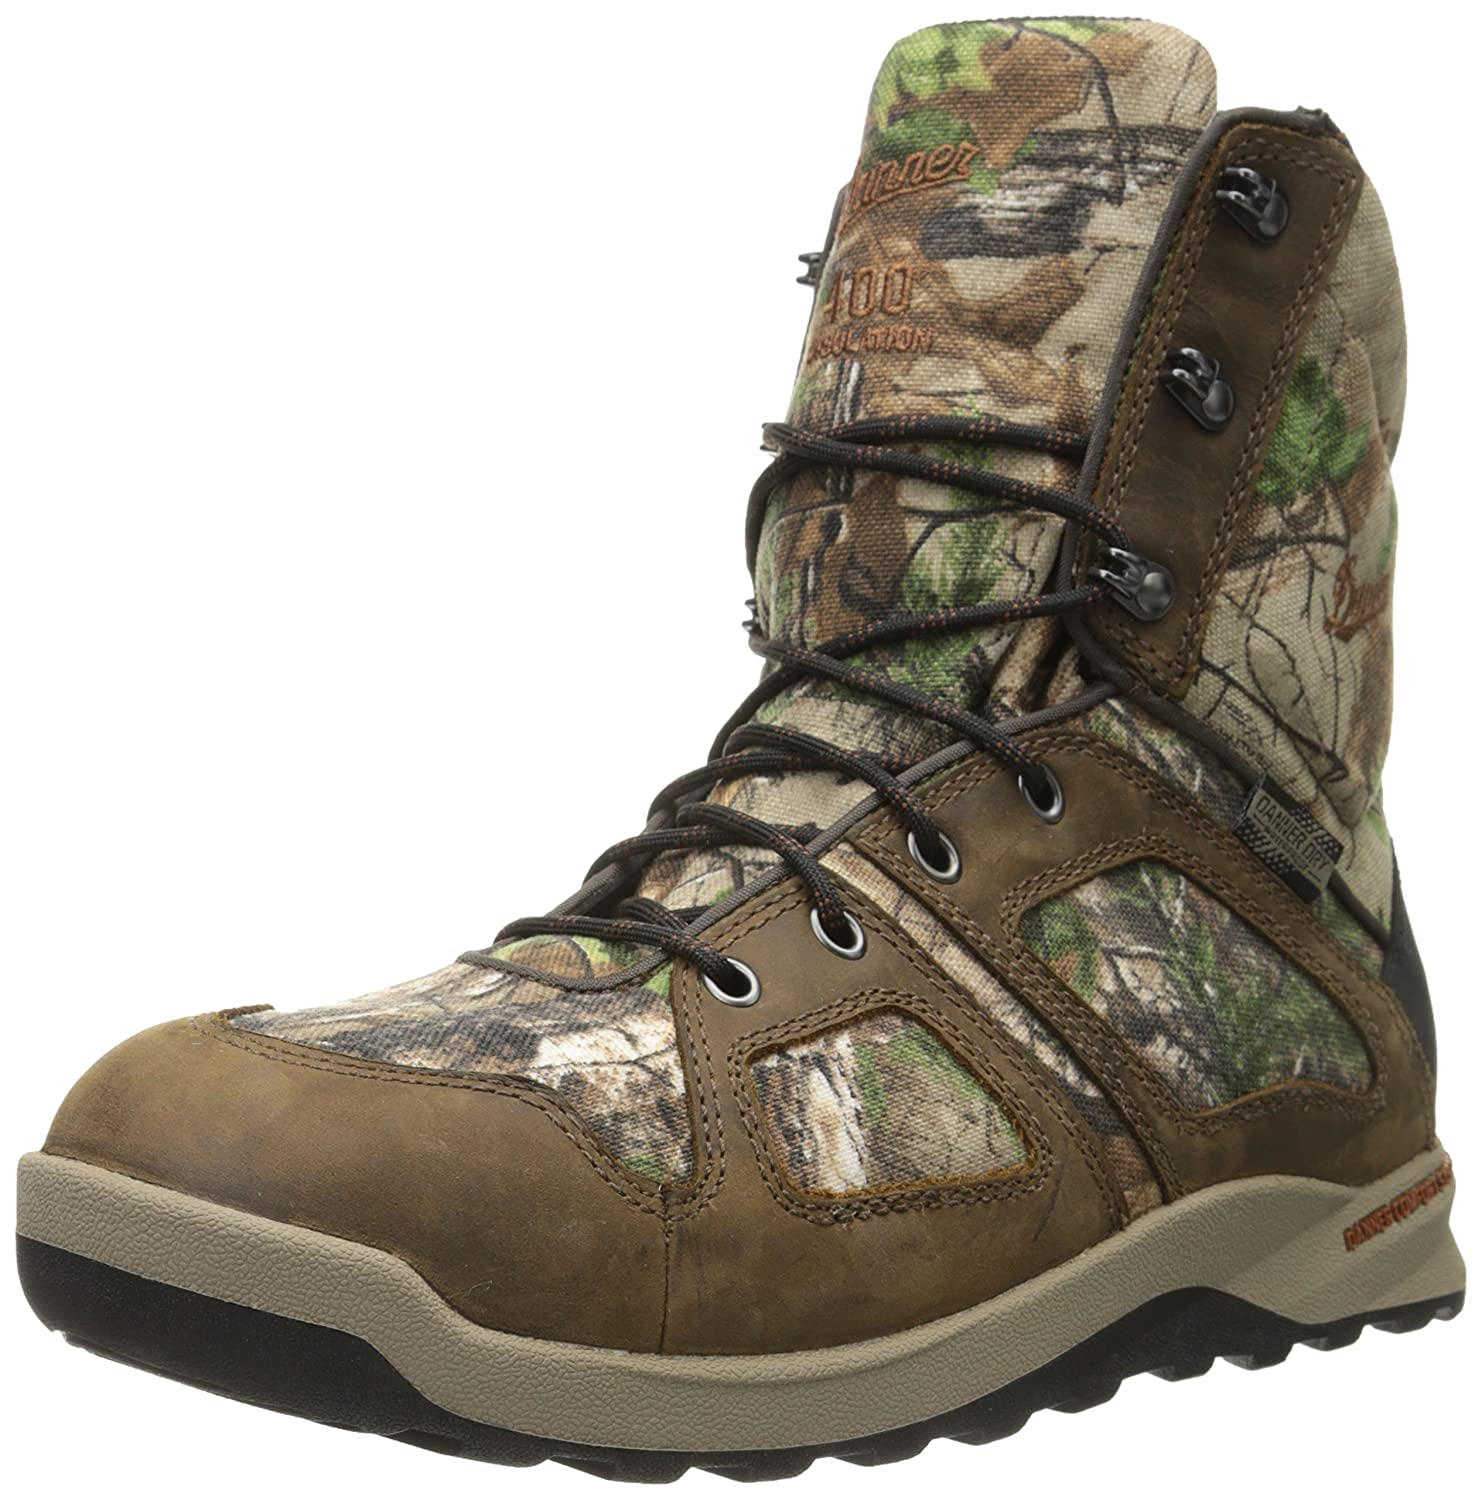 Danner Men's Steadfast 8 Inch 400G Hunting Boot